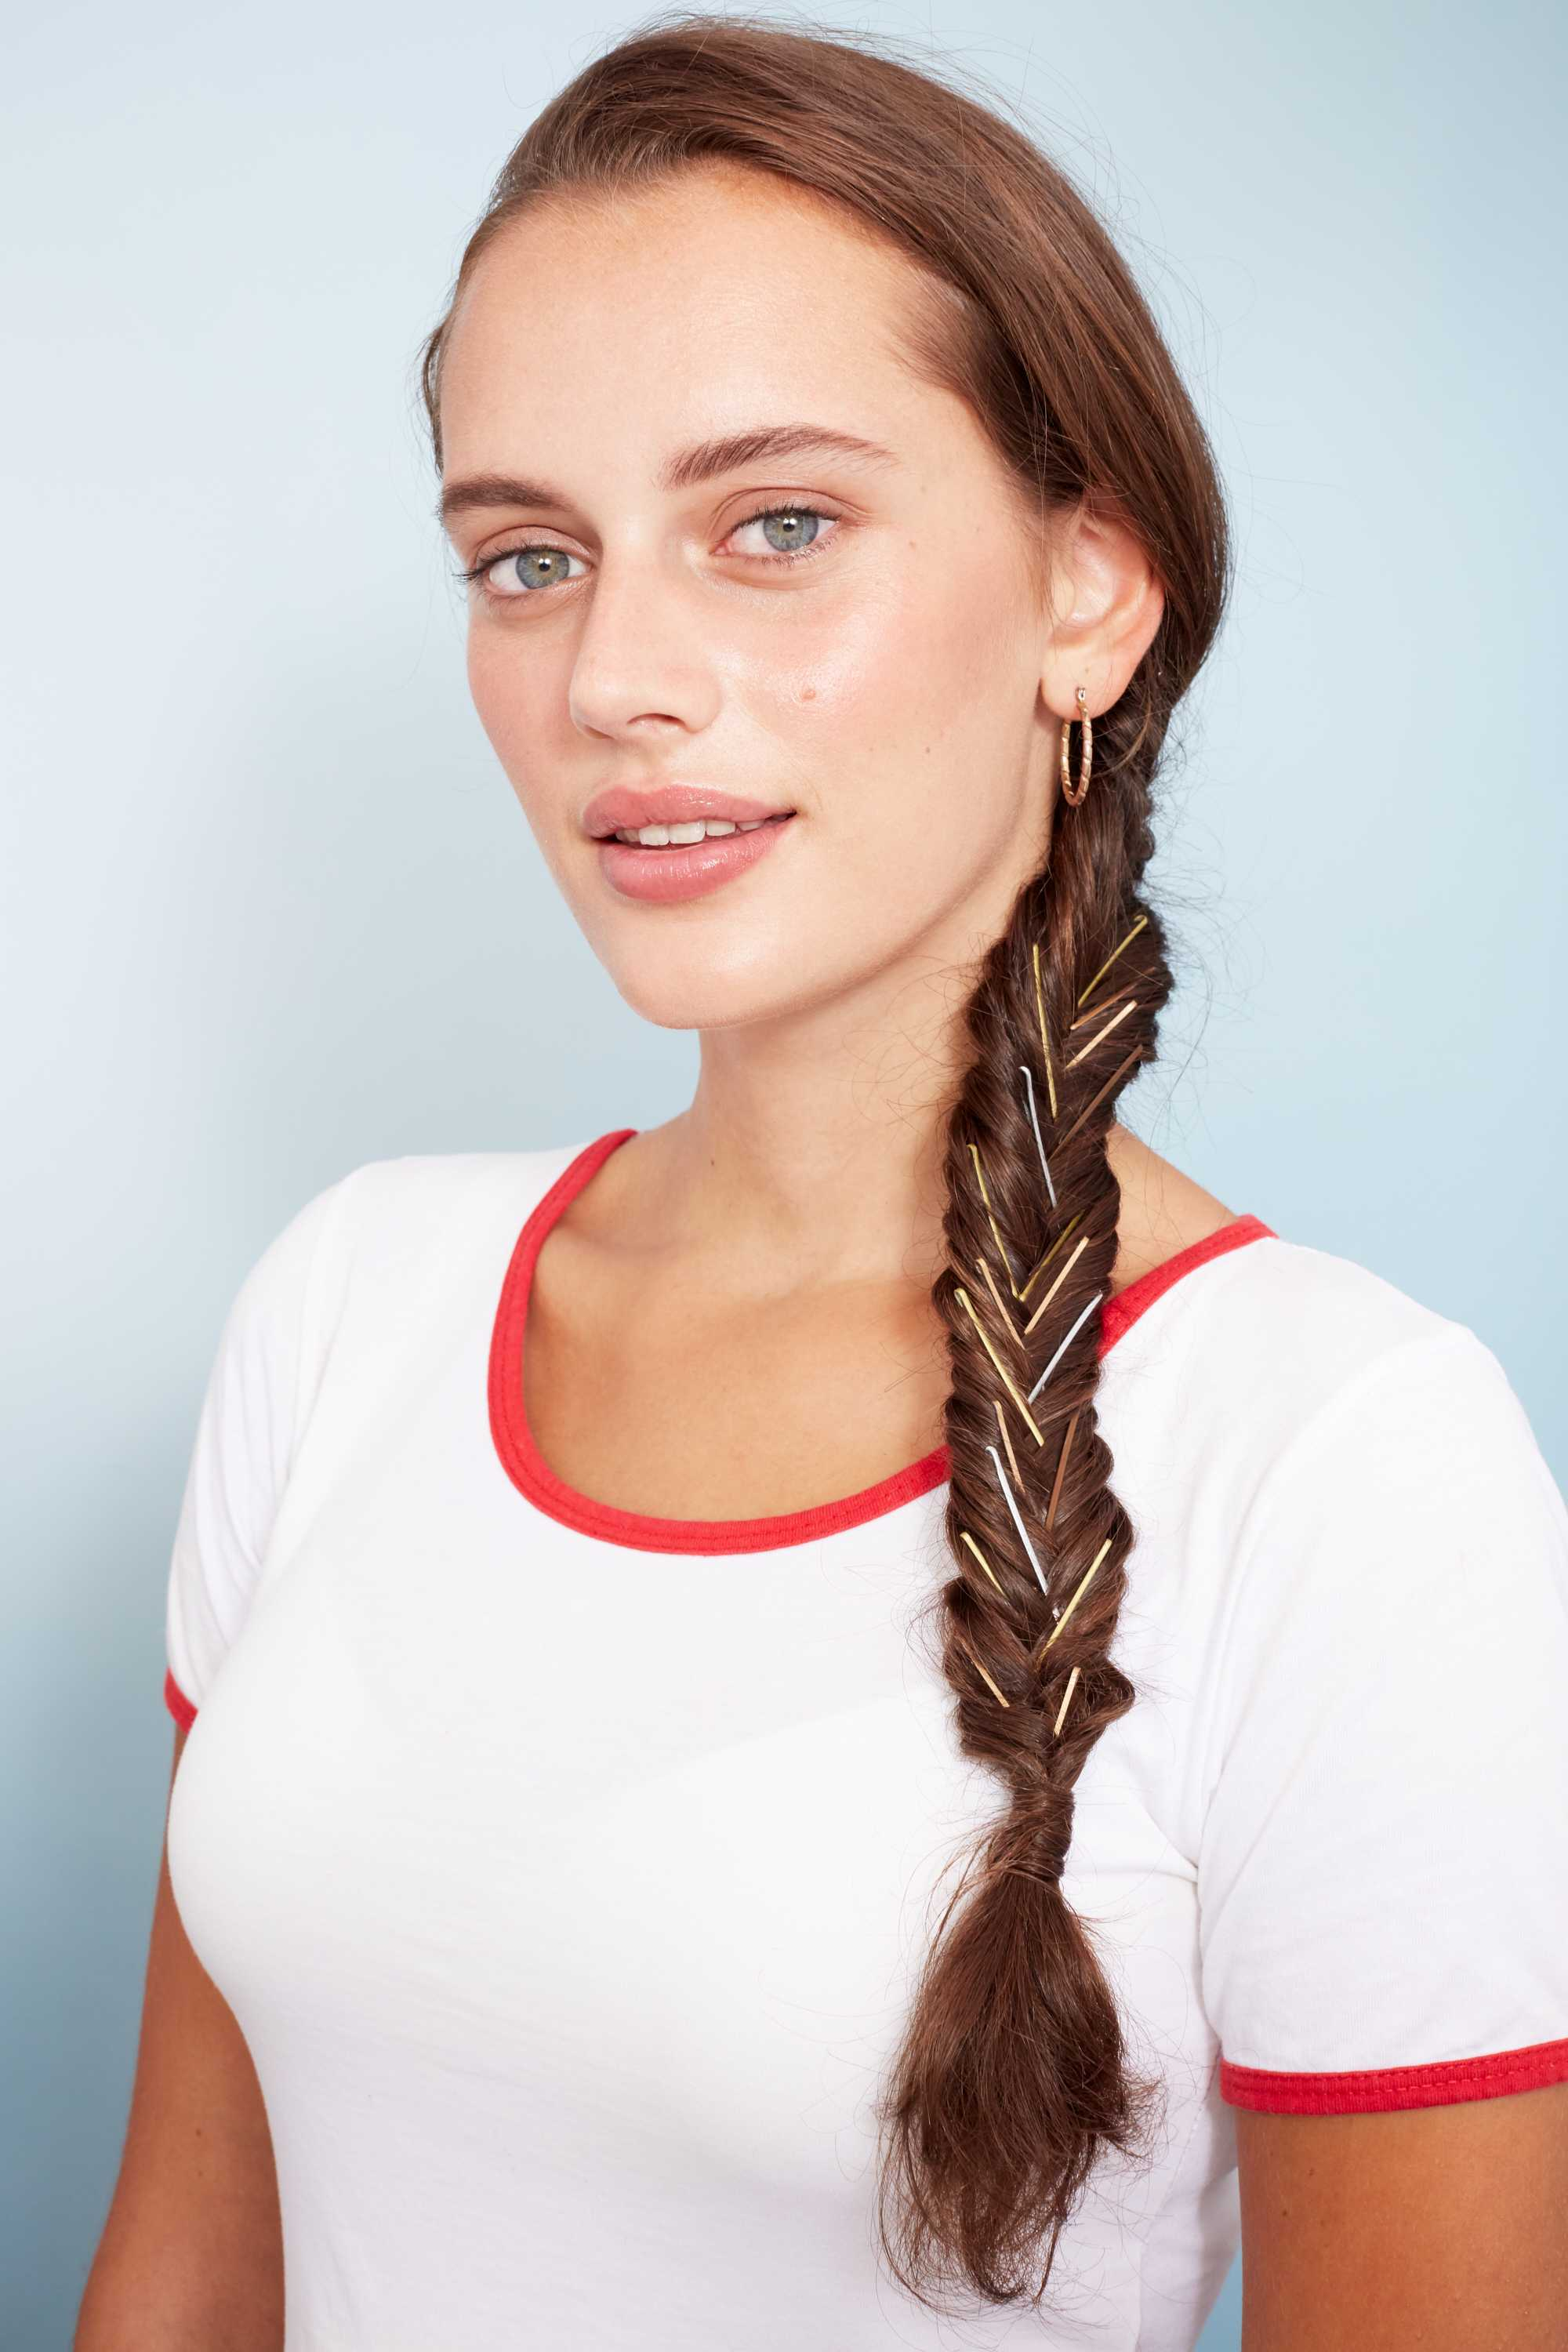 Bobby pin hairstyles: Close up shot of a woman with long chestnut brown hair styled into a side fishtail braid decorated with bobby pins, wearing white in a studio setting